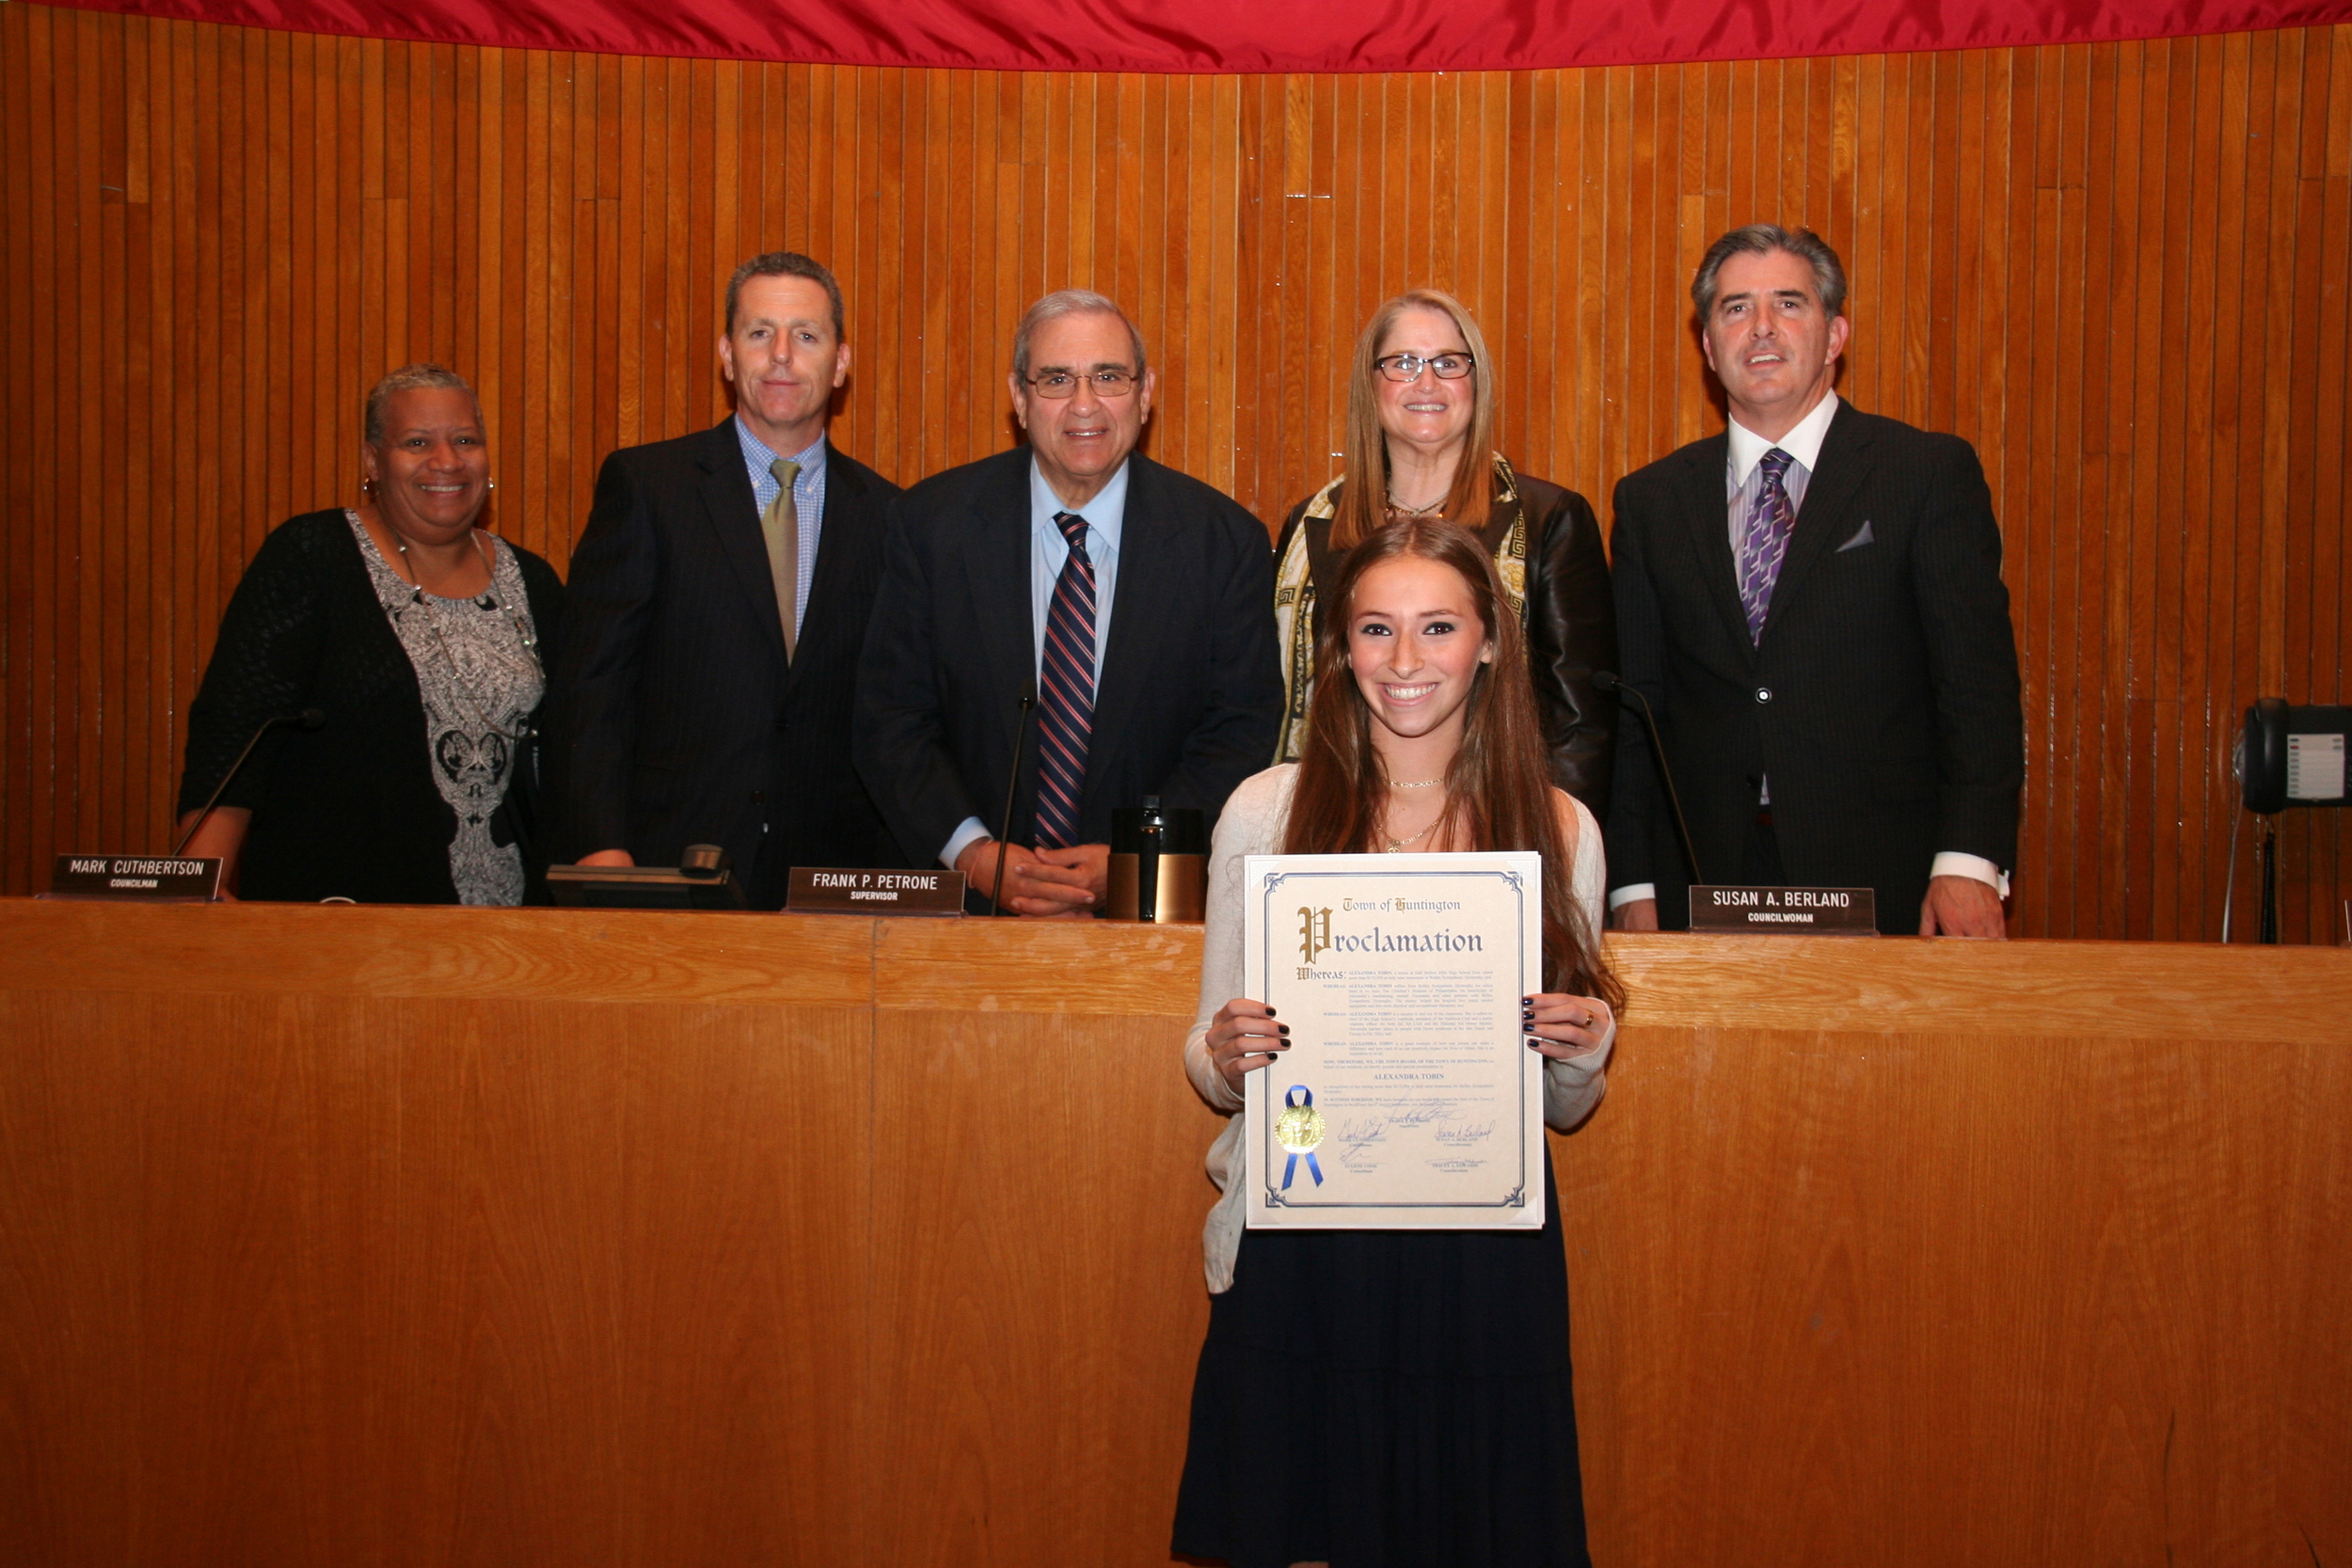 Alexandra Tobin, front, receives a proclamation from the Huntington Town Board during the Nov. 6 meeting for her fundraising cause that has generated more than $115,000 toward finding a cure for Reflex Sympathetic Dystrophy – a disease she suffers from.